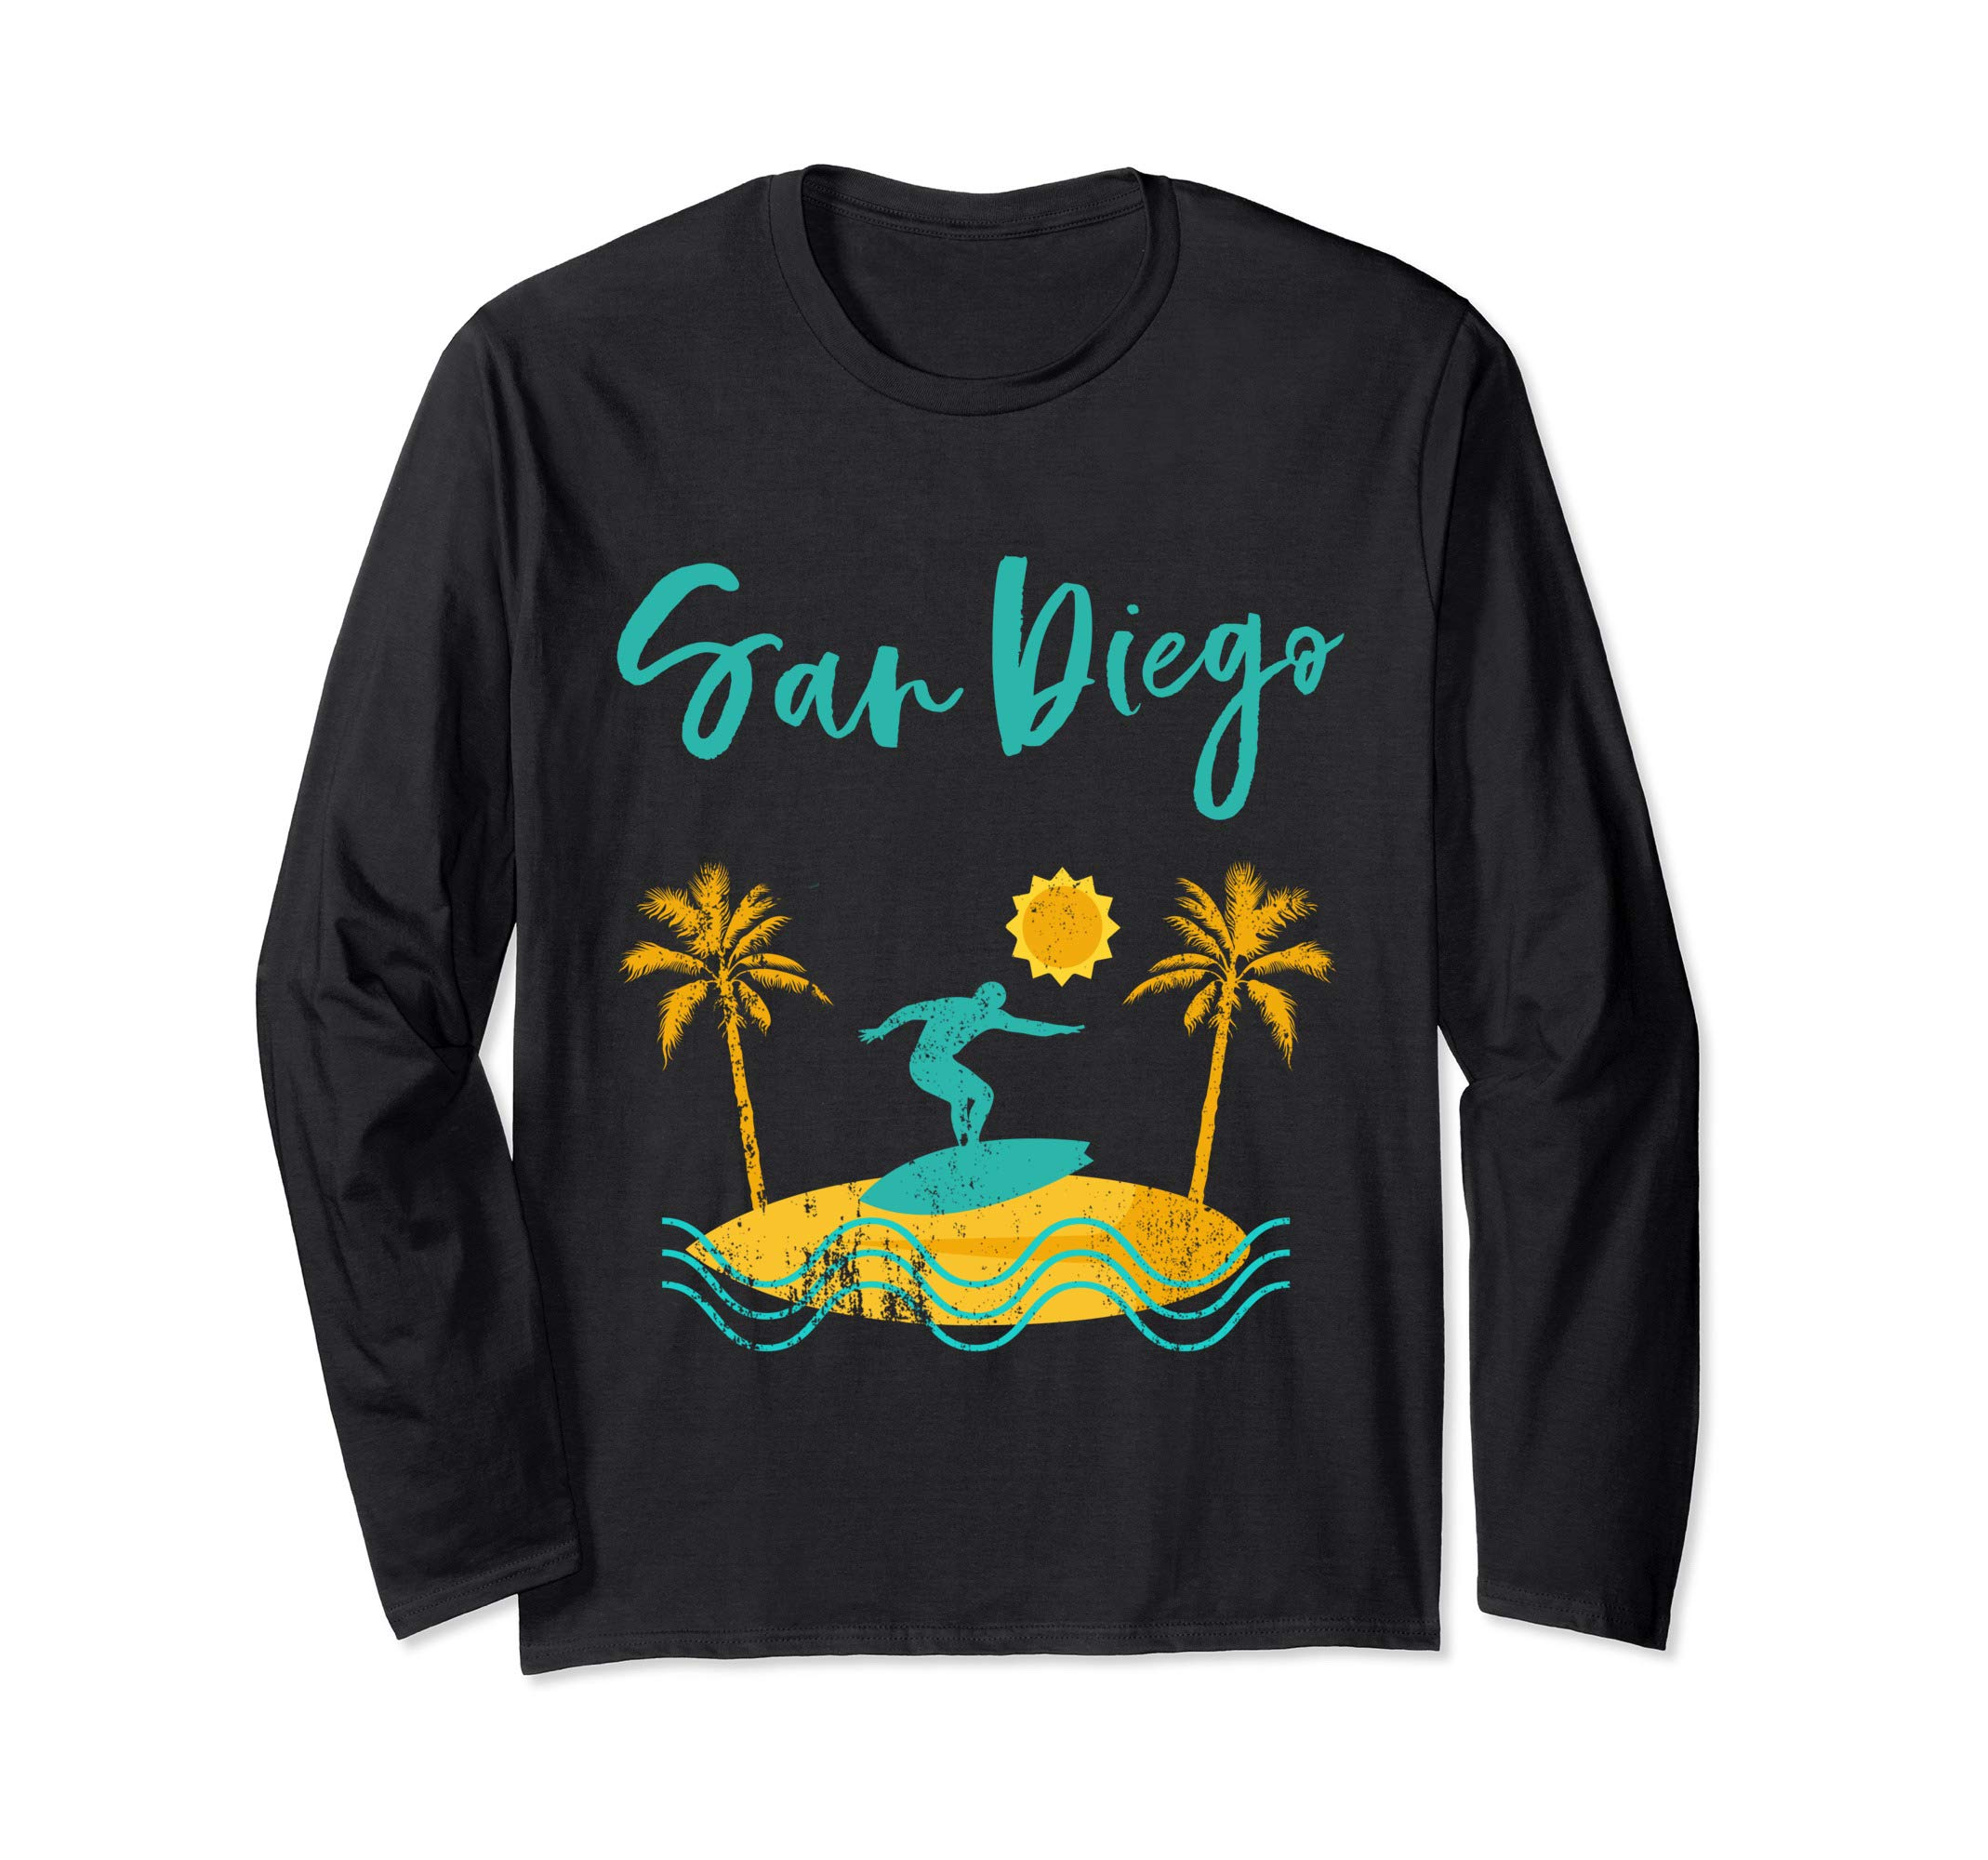 Vintage Surf San Diego California 70s 80s Retro San Diego Long Sleeve T-Shirt by Retro Santa Cruz Vintage Surf Tee